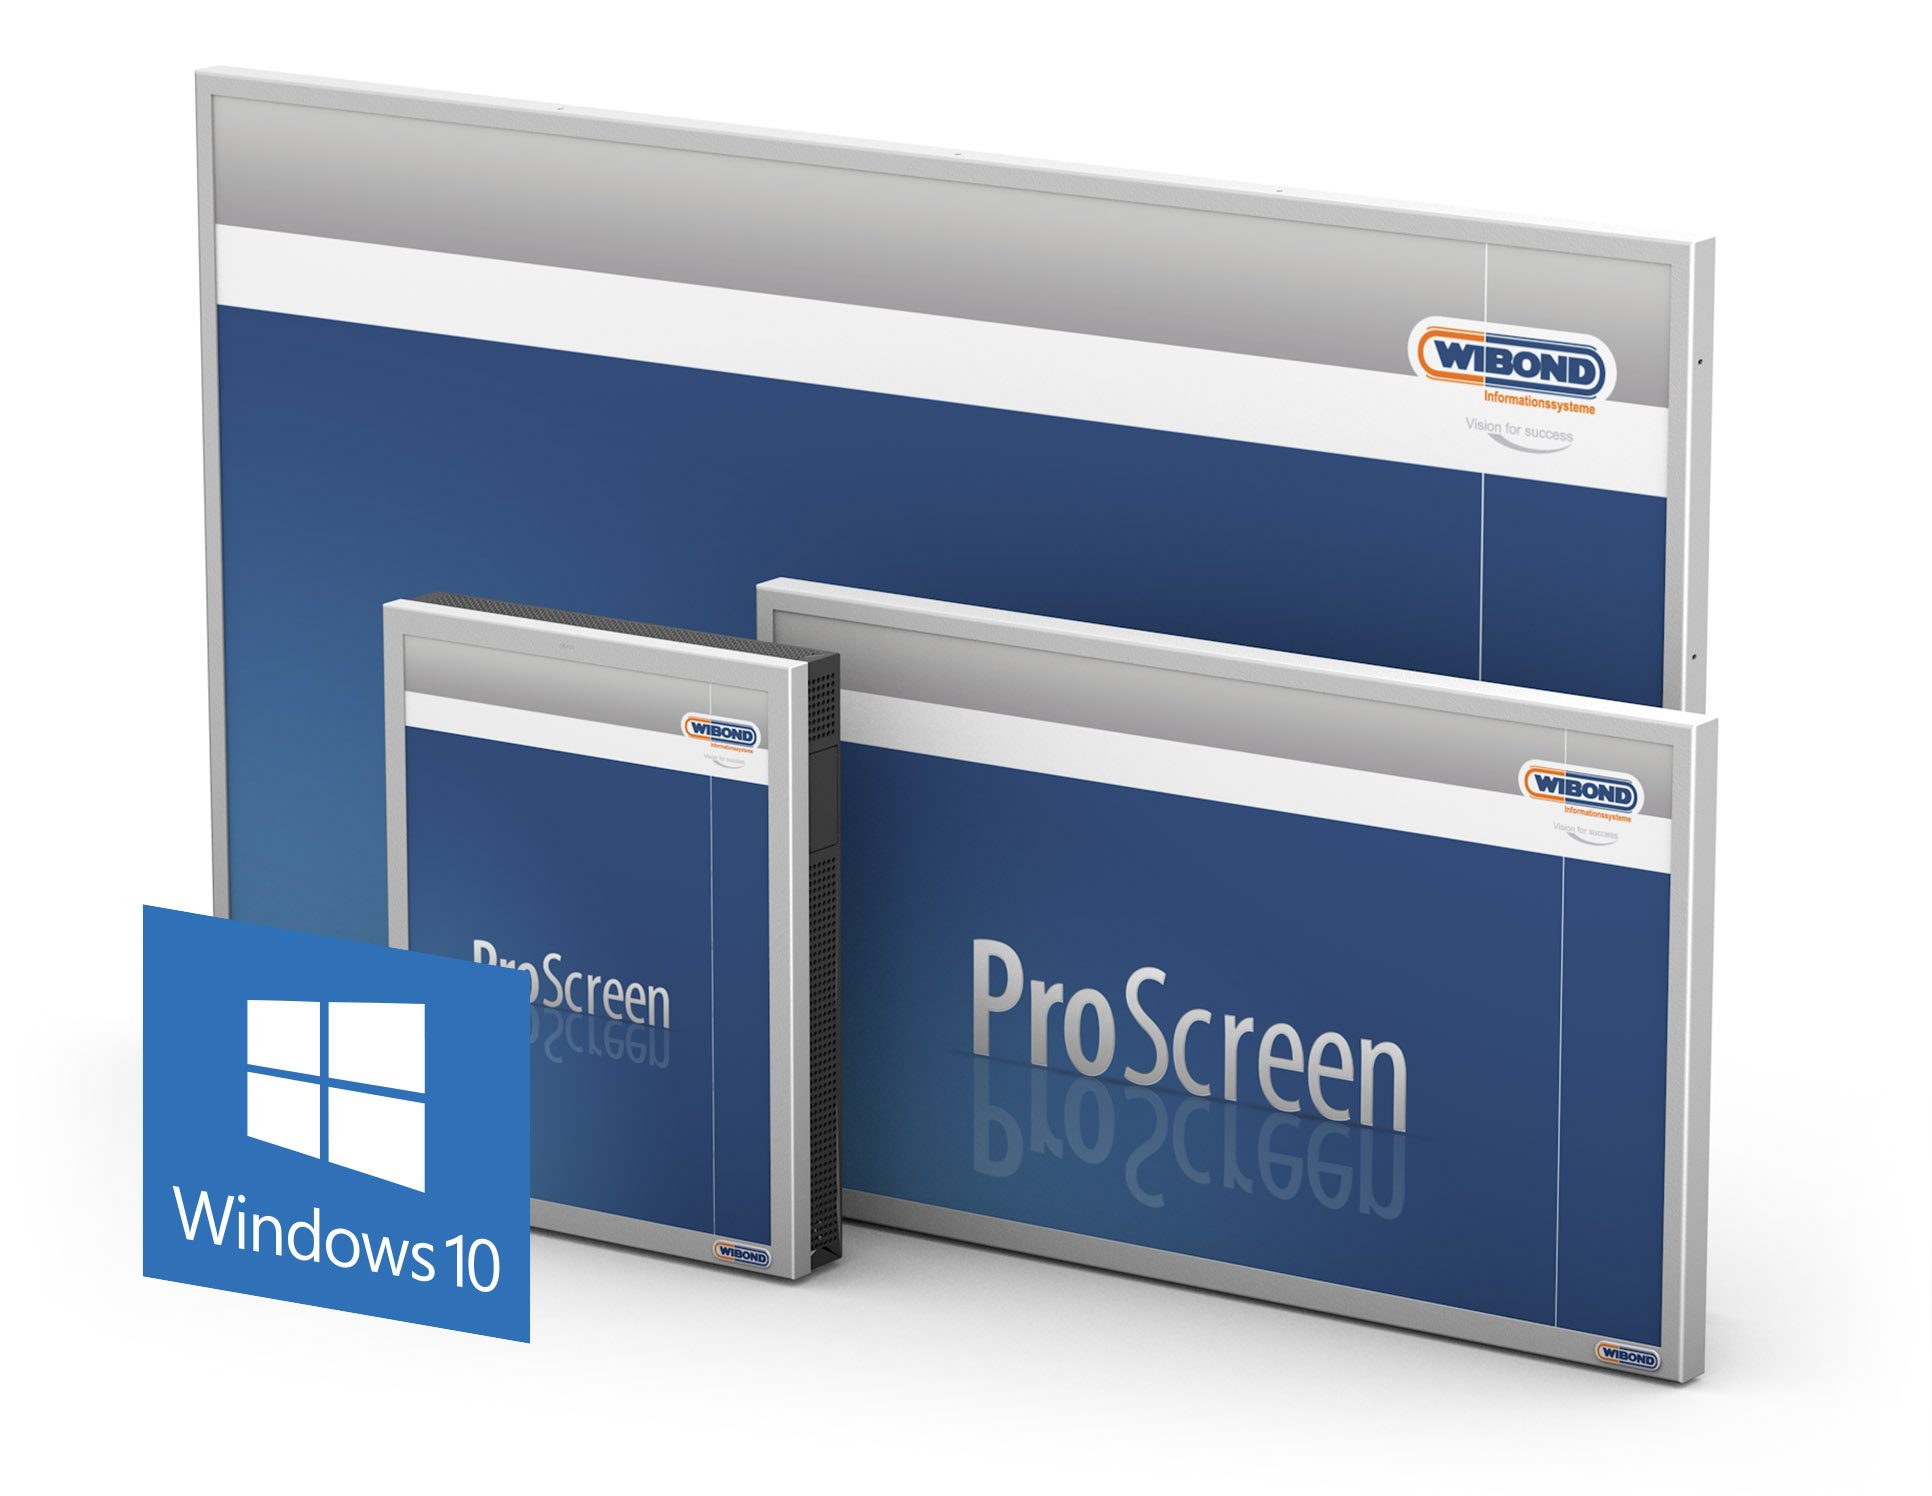 ProScreen Monitore mit Embedded-PC